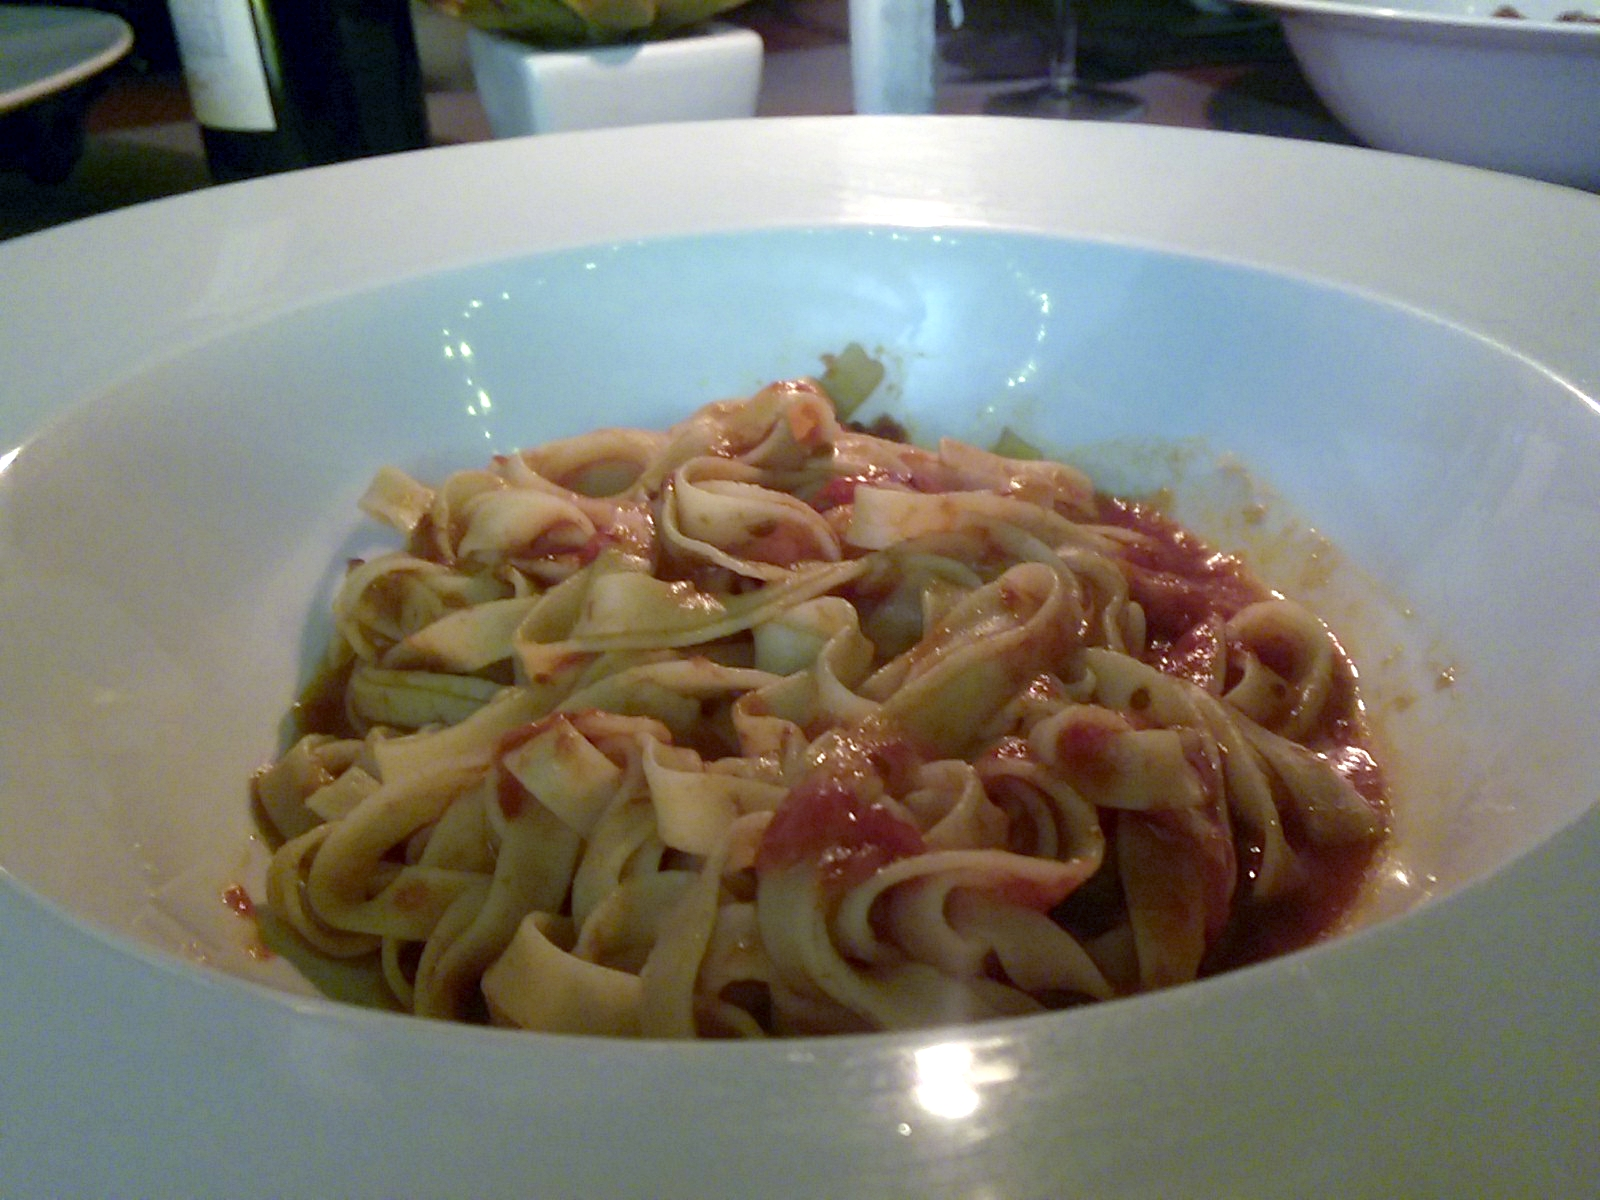 A white bowl with wide pasta and tomato sauce